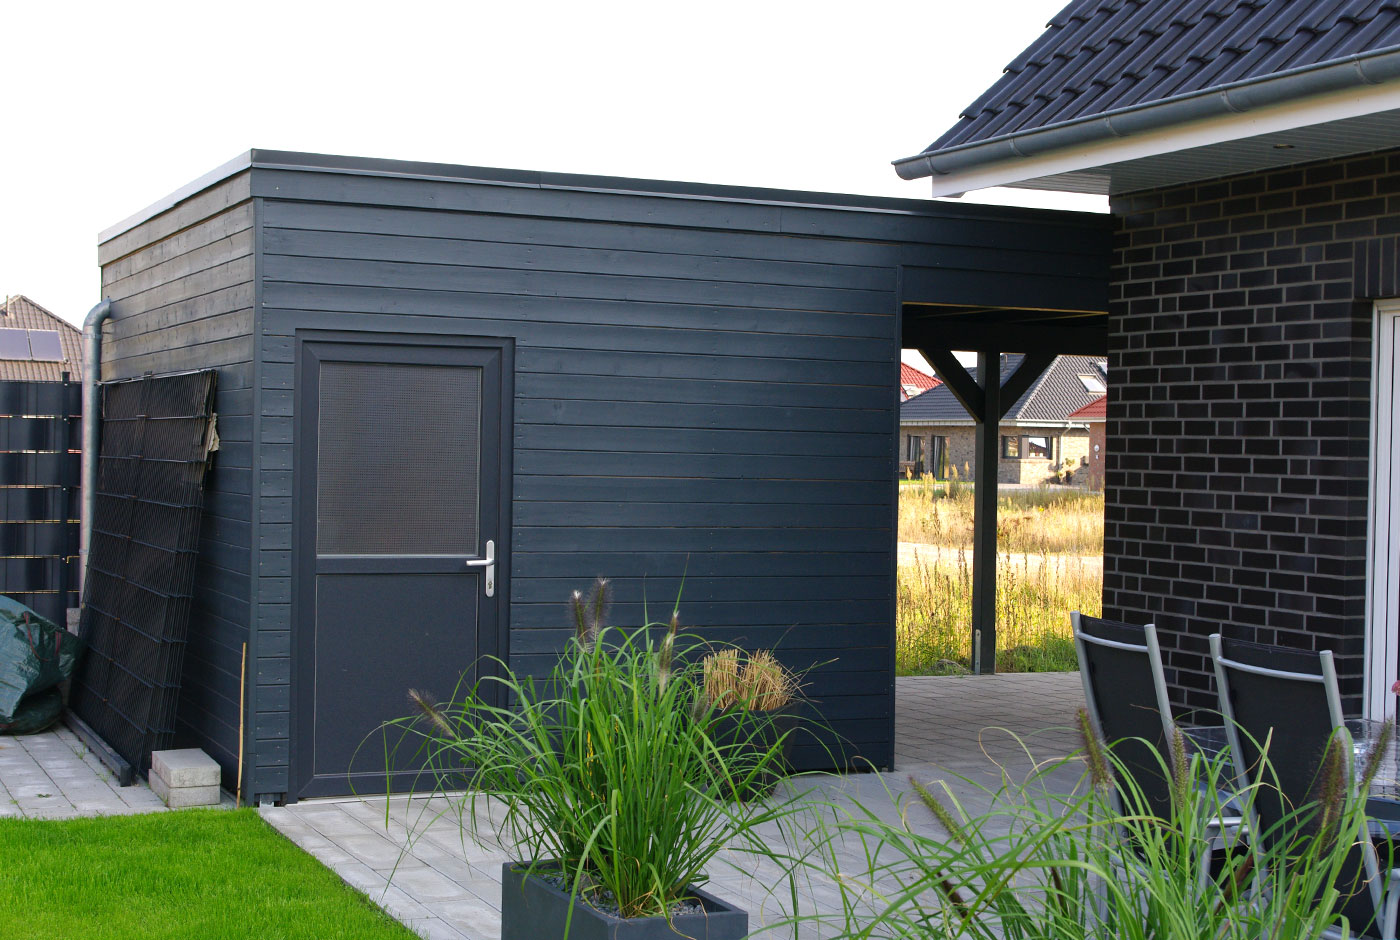 carport und carportw nde gestalten so muss das. Black Bedroom Furniture Sets. Home Design Ideas